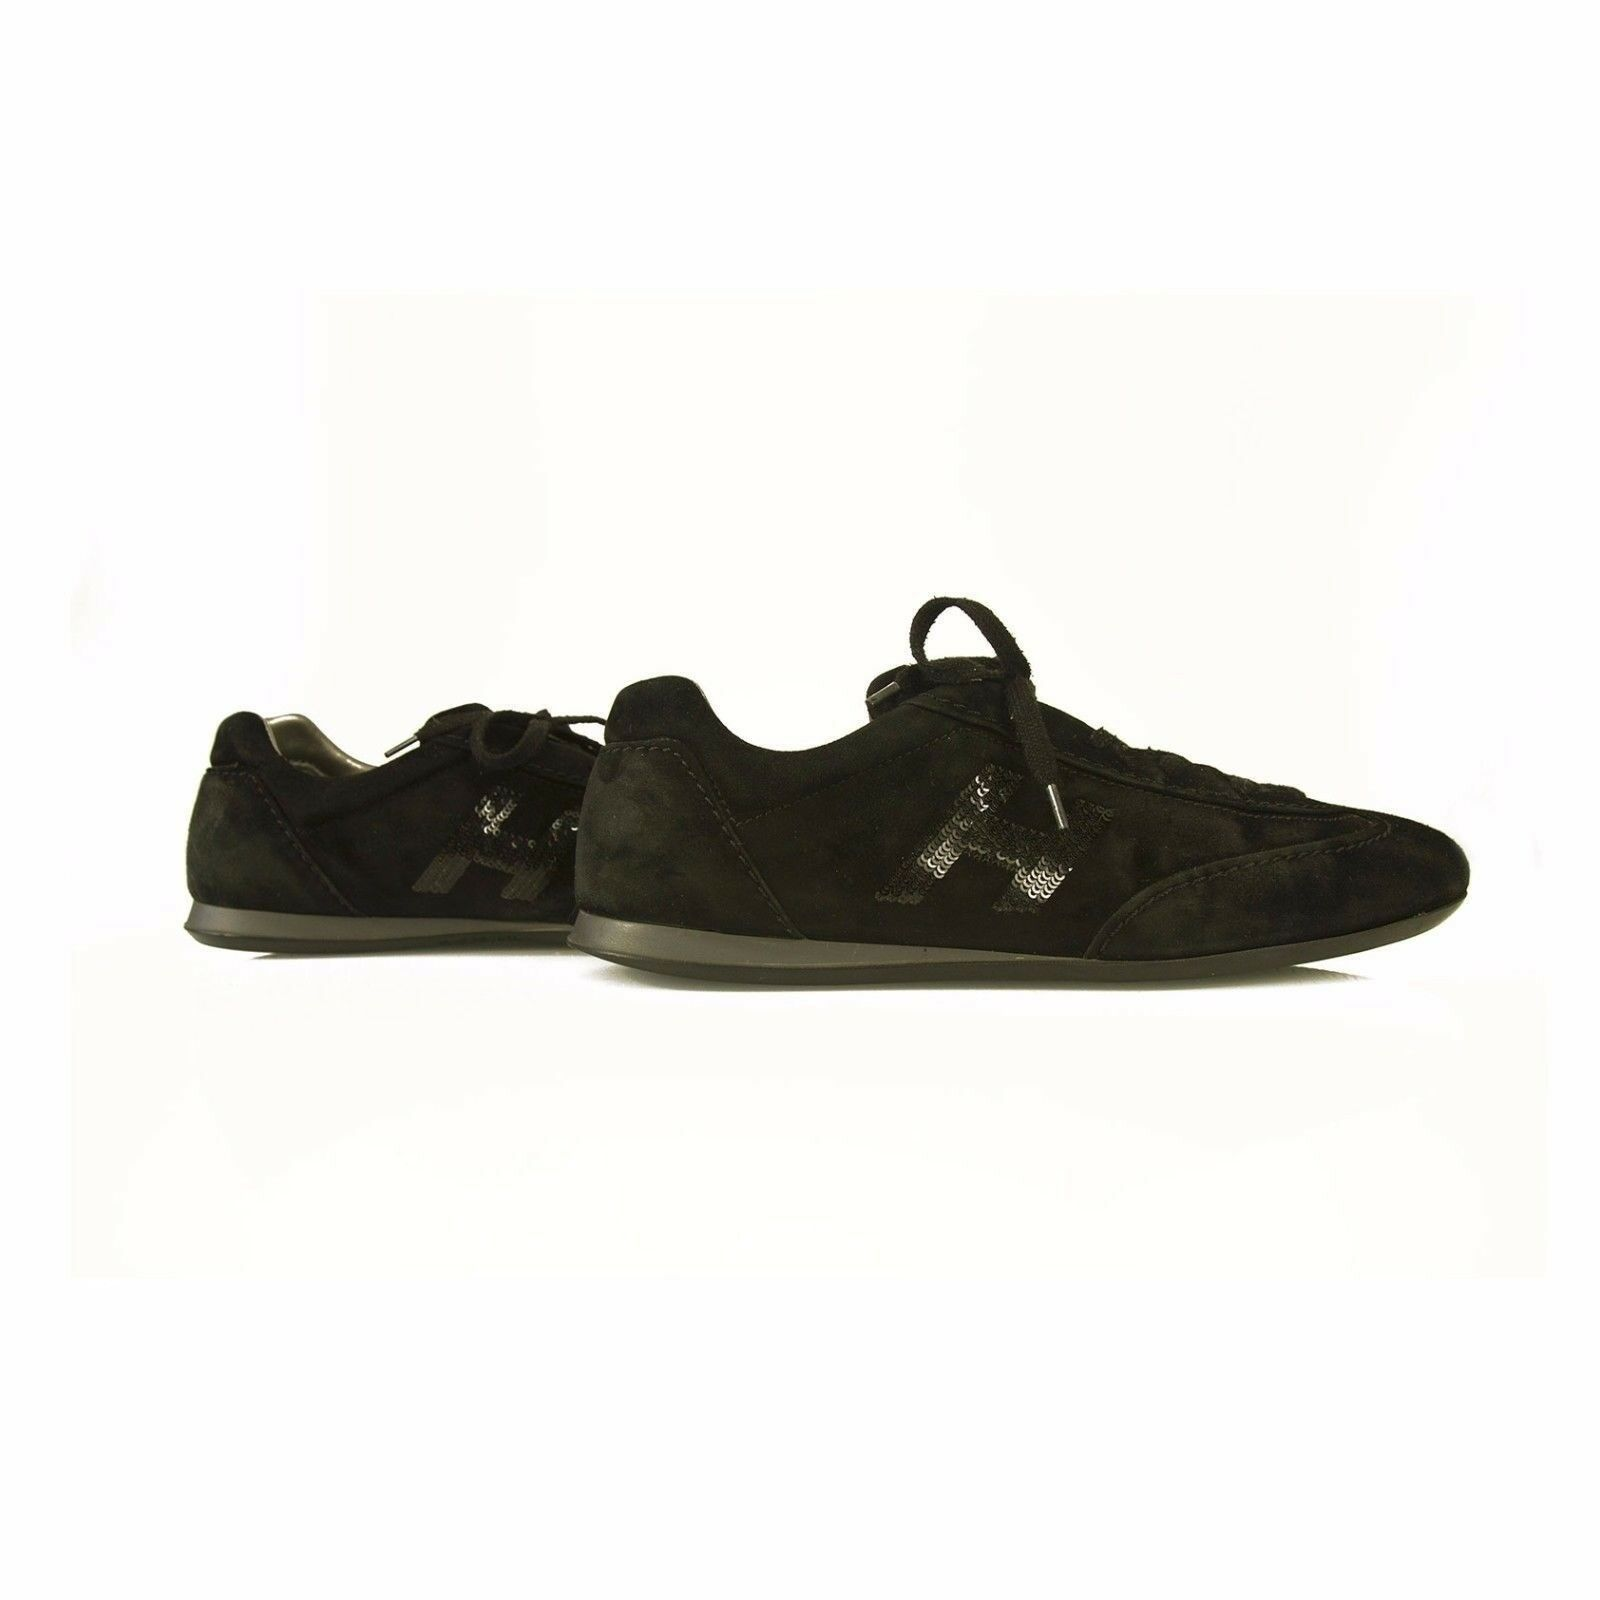 Black suede HOGAN Olympia By TOD'S H squined shoes Sneakers Trainers shoes 41